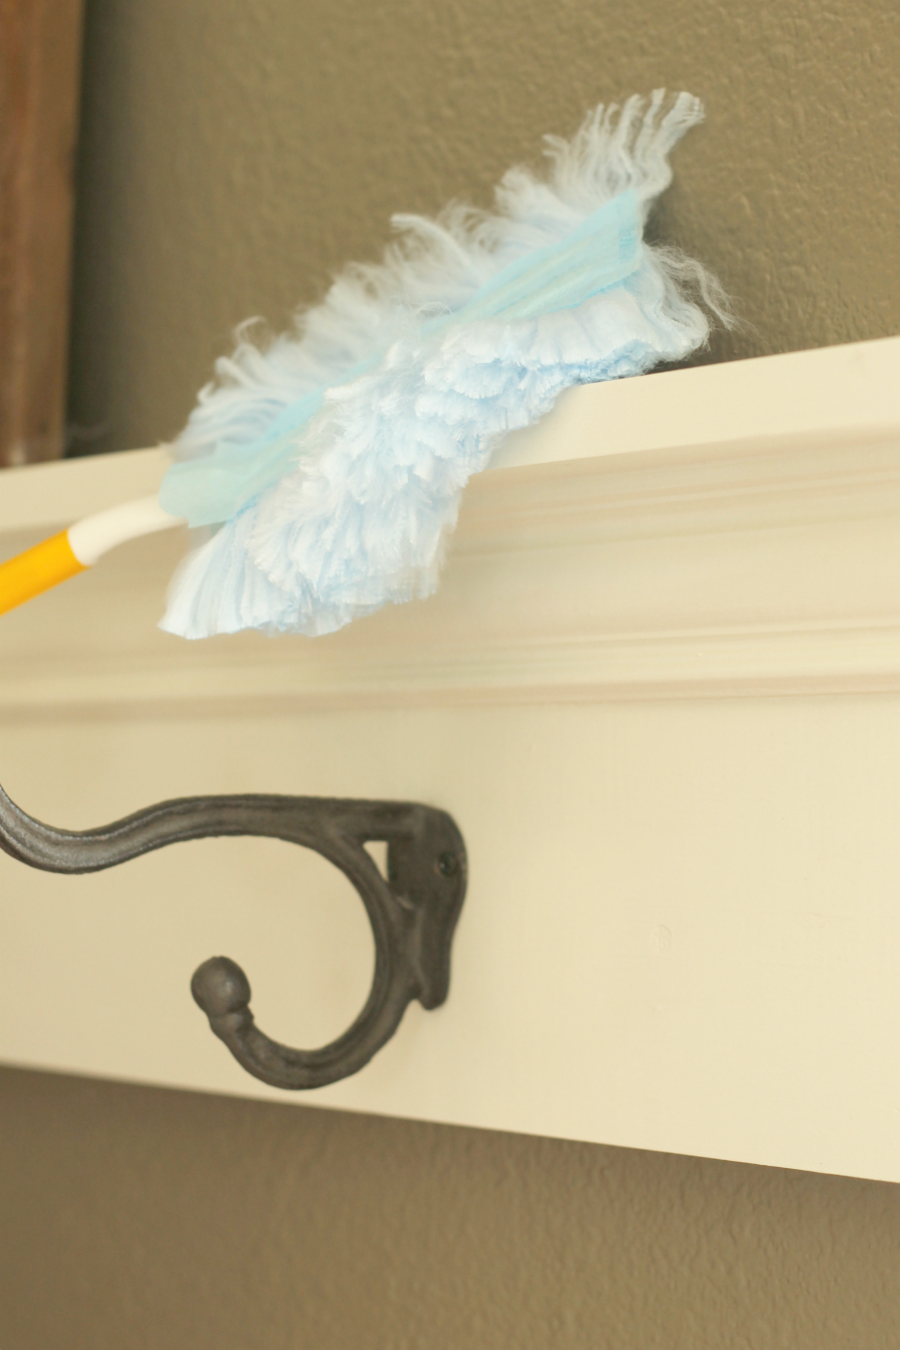 21 Things to Do Before Selling Your Home - Dust all surfaces, and don't forget cobwebs in corners higher up.